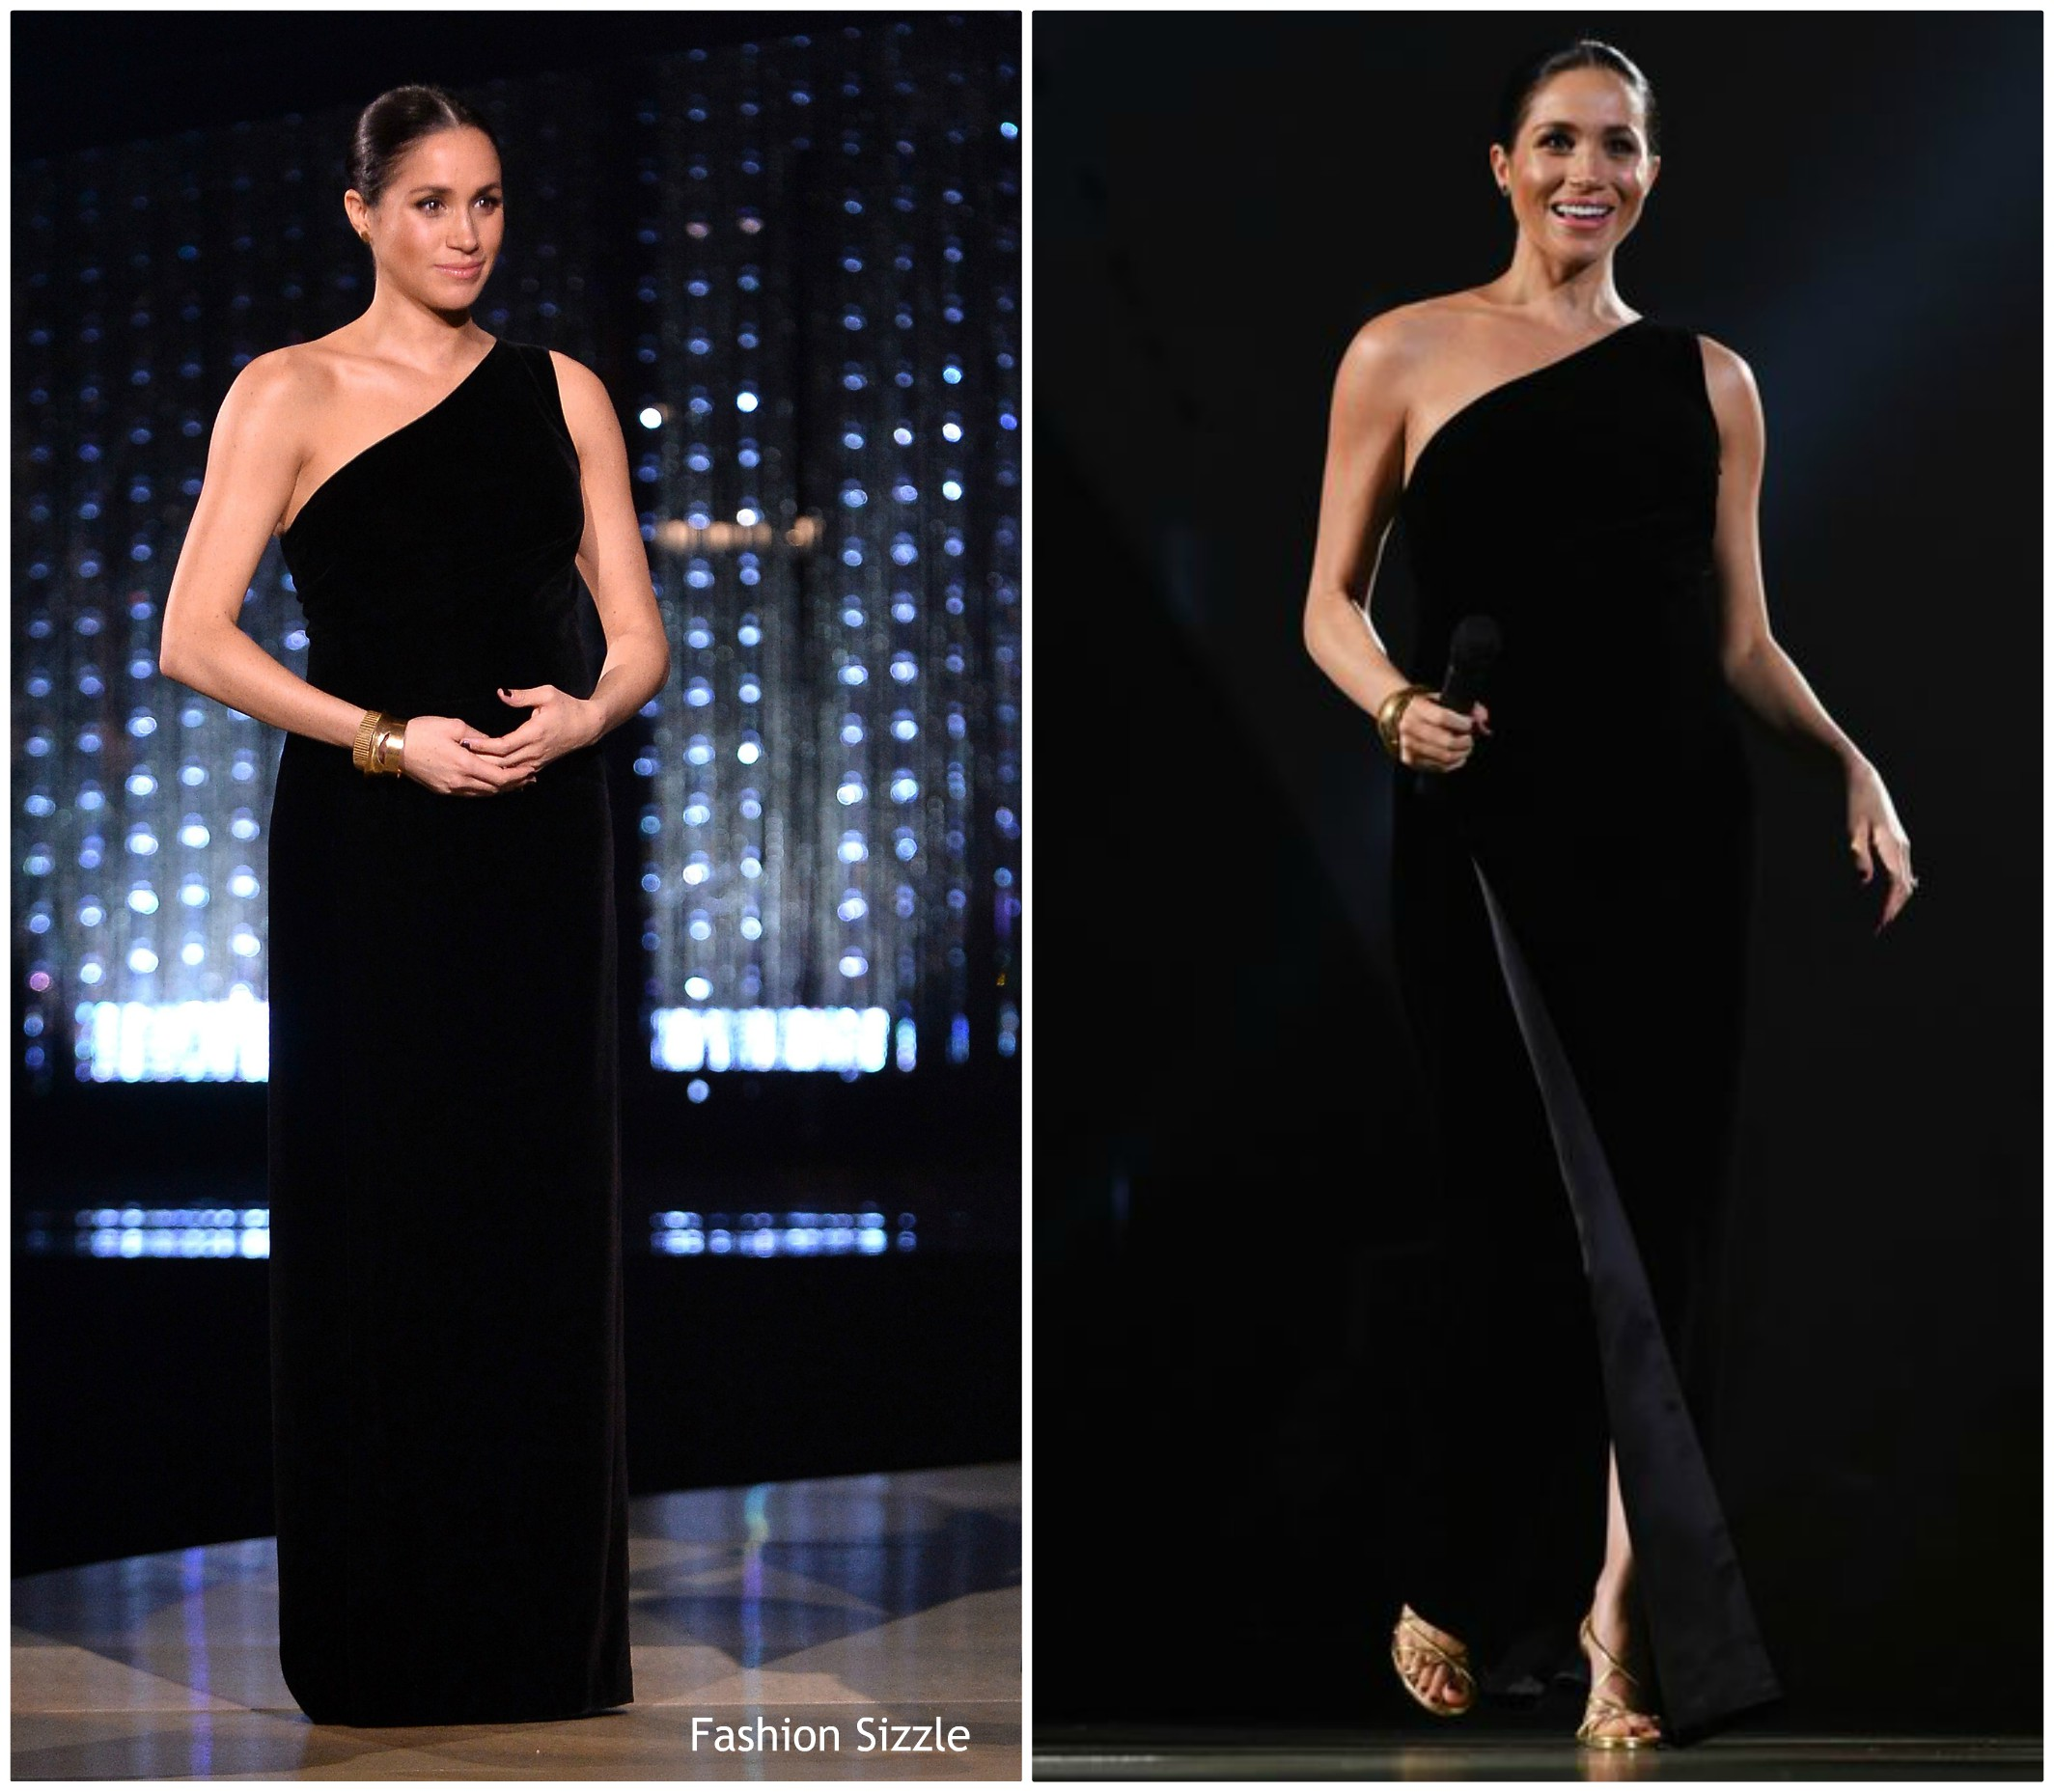 meghan-duchess-of-sussex-in-givenchy-haute-couture-the-fashion-awards-2018